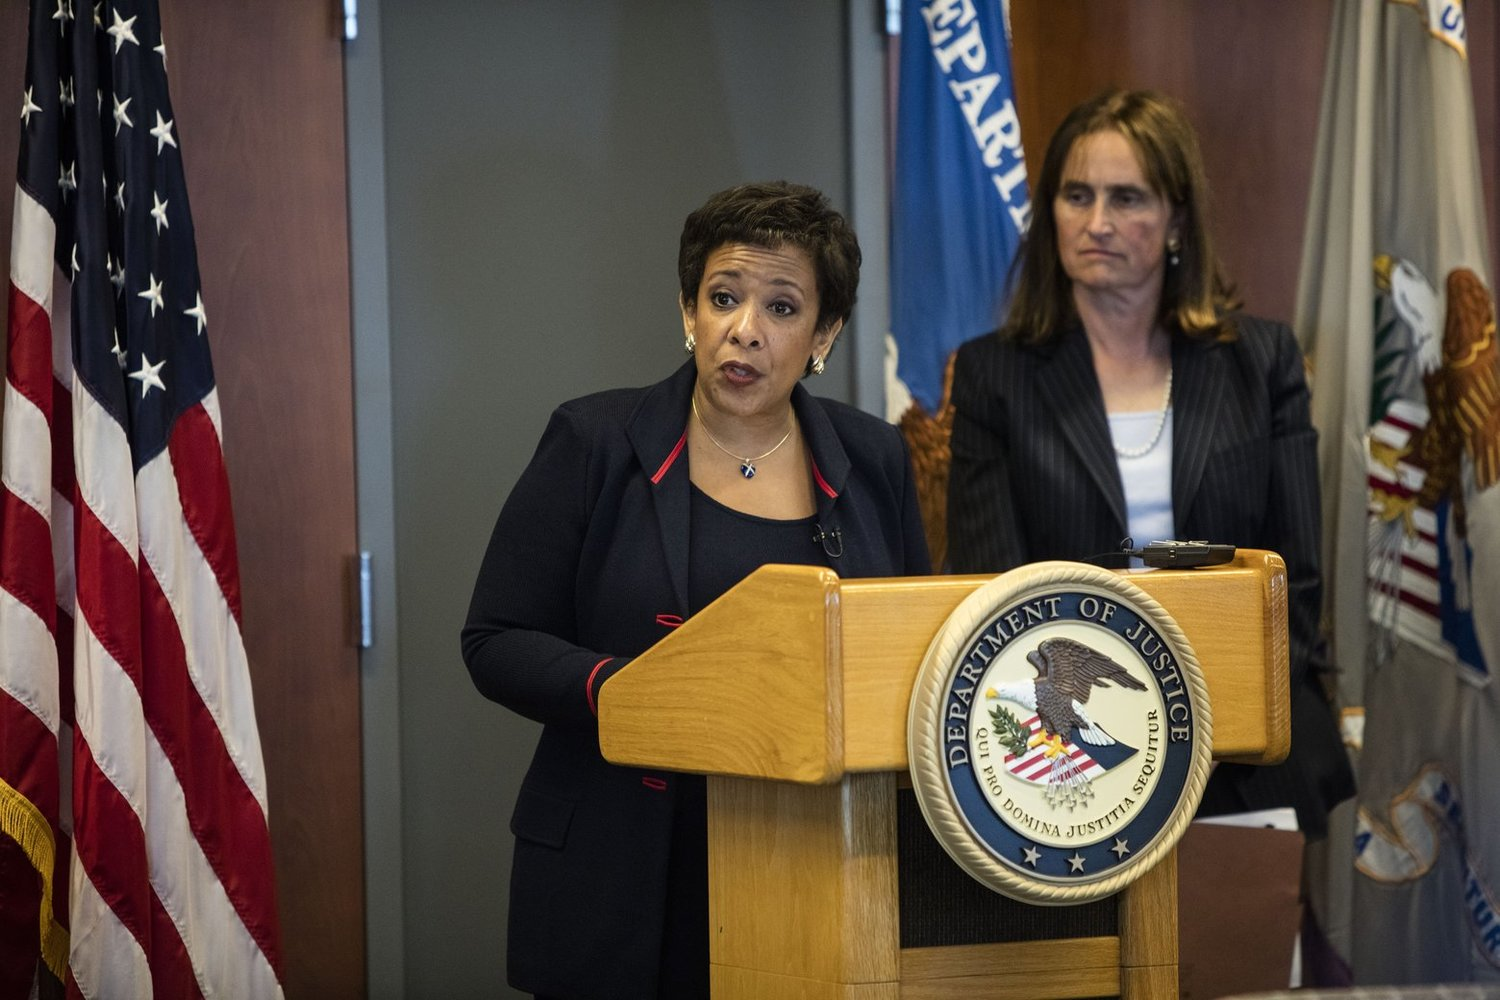 U S  Attorney General Lynch Lauds Seattle Police for Reform